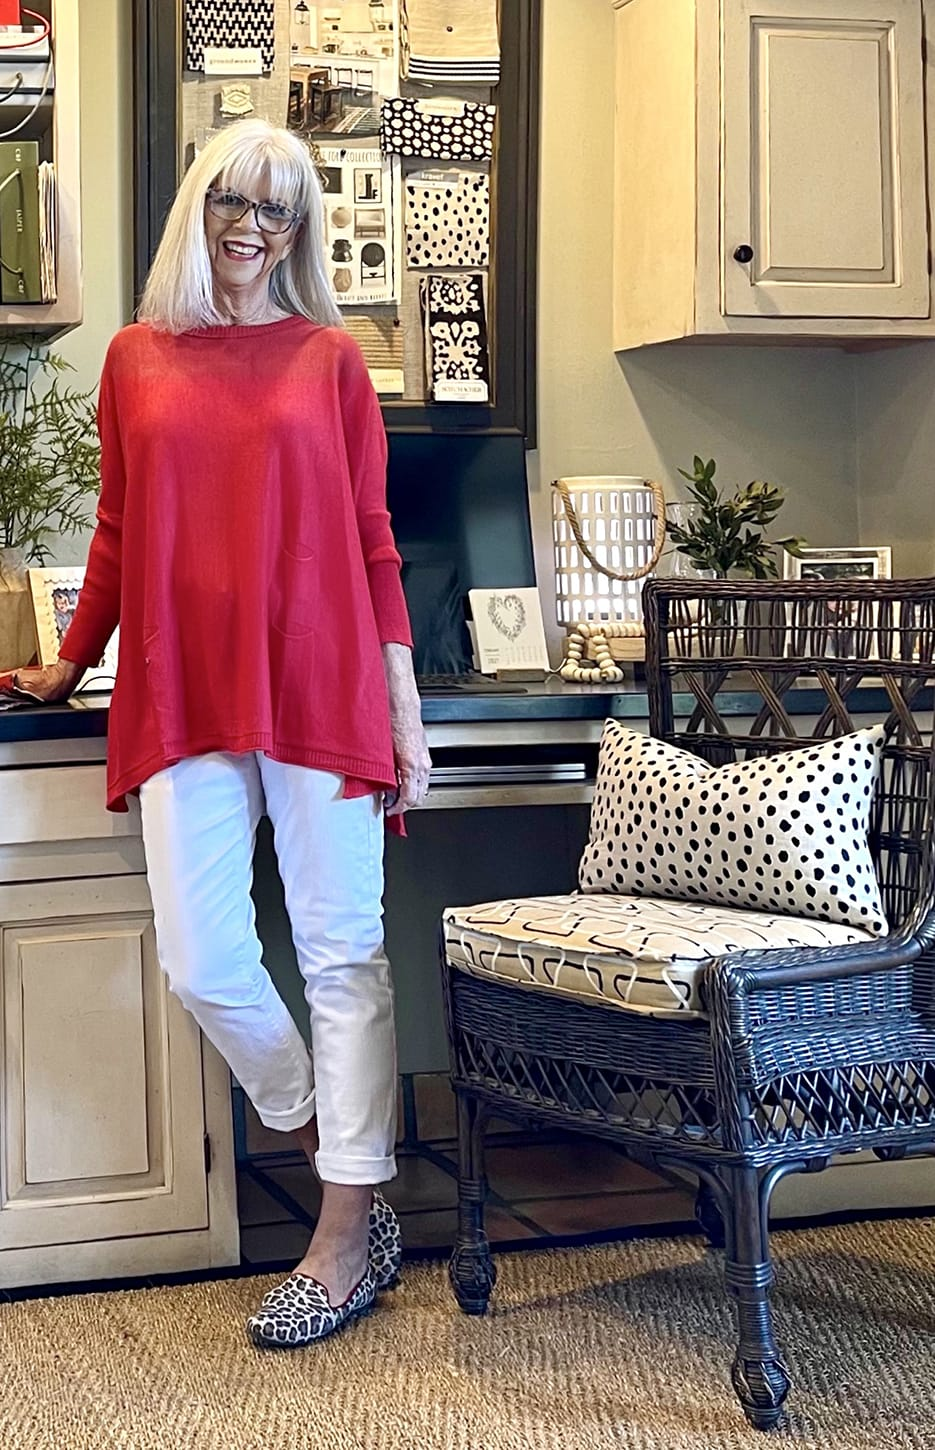 cindy hattersley in mer sea sweater and rothy's leopard loafers